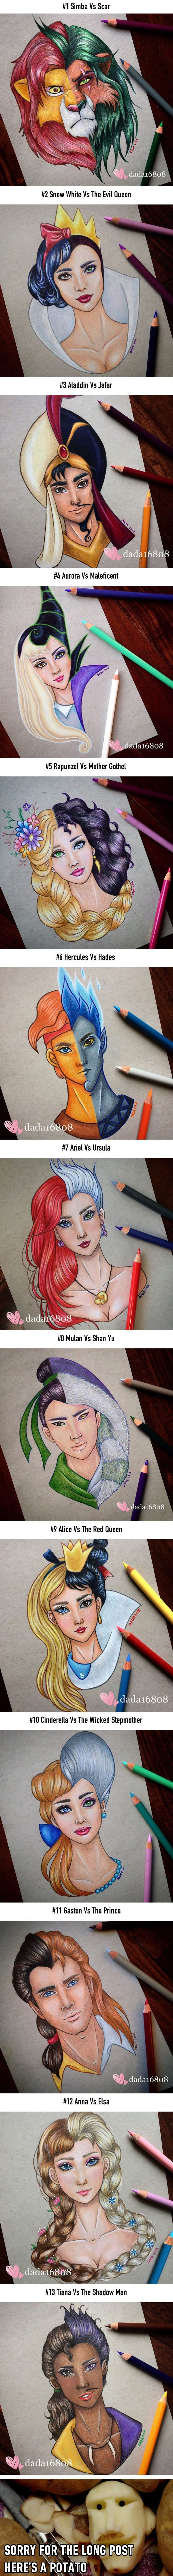 This Artist Merges Disney Heroes With Villains